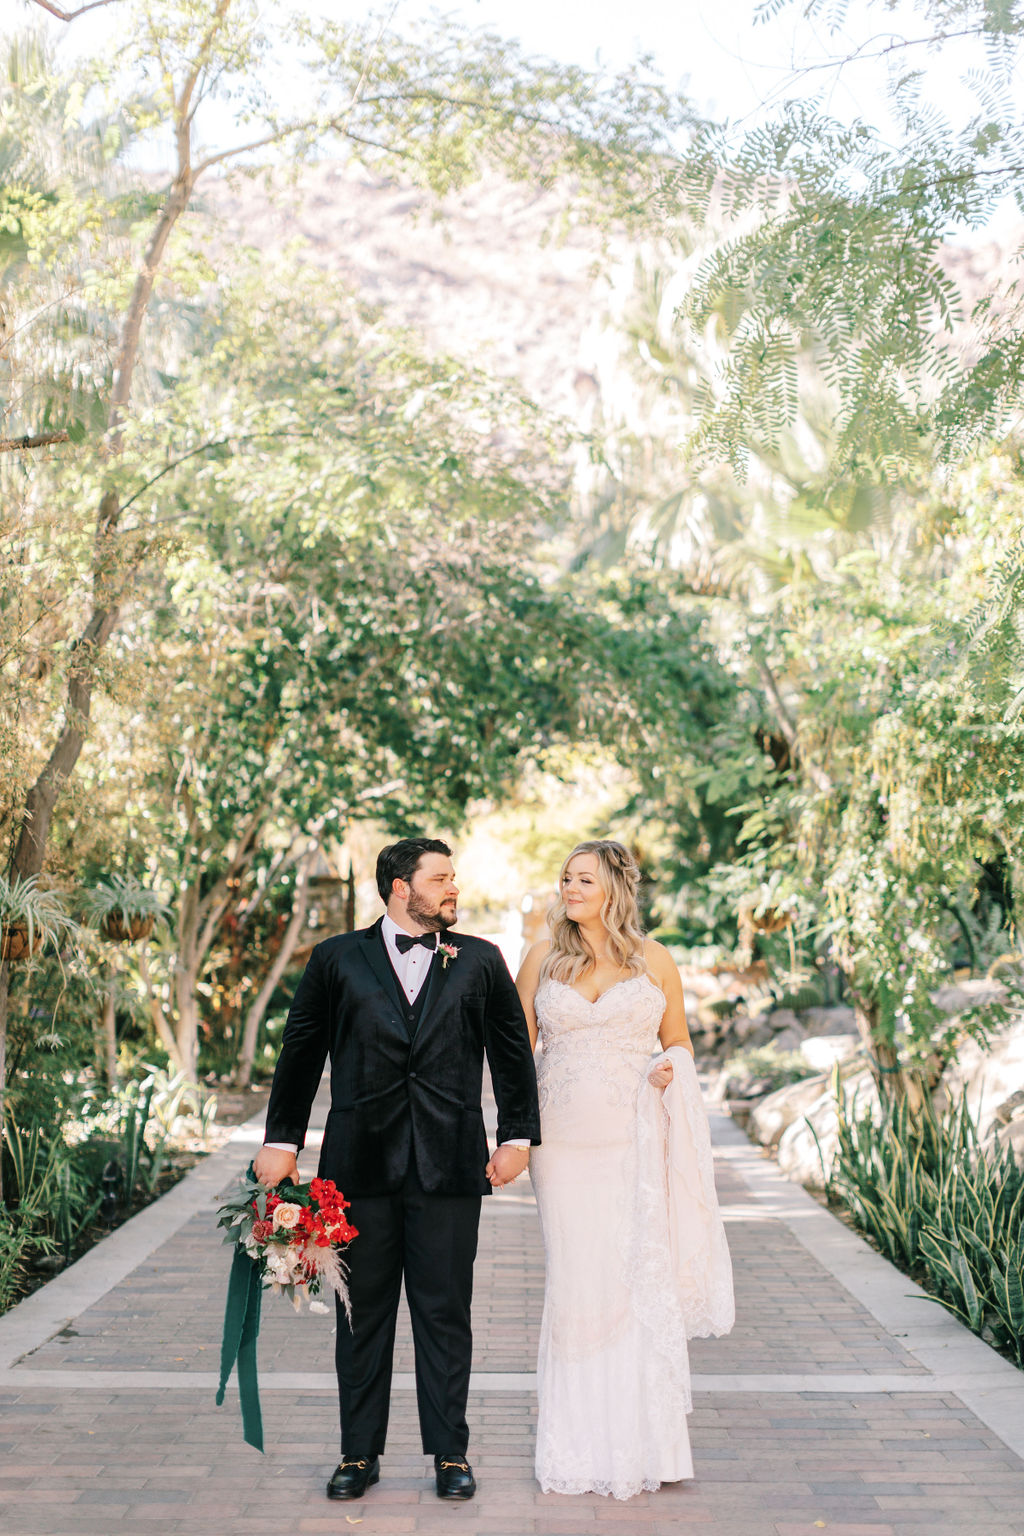 This Bohemian Desert Wedding in Palm Springs Featured Plenty of Art Deco Details